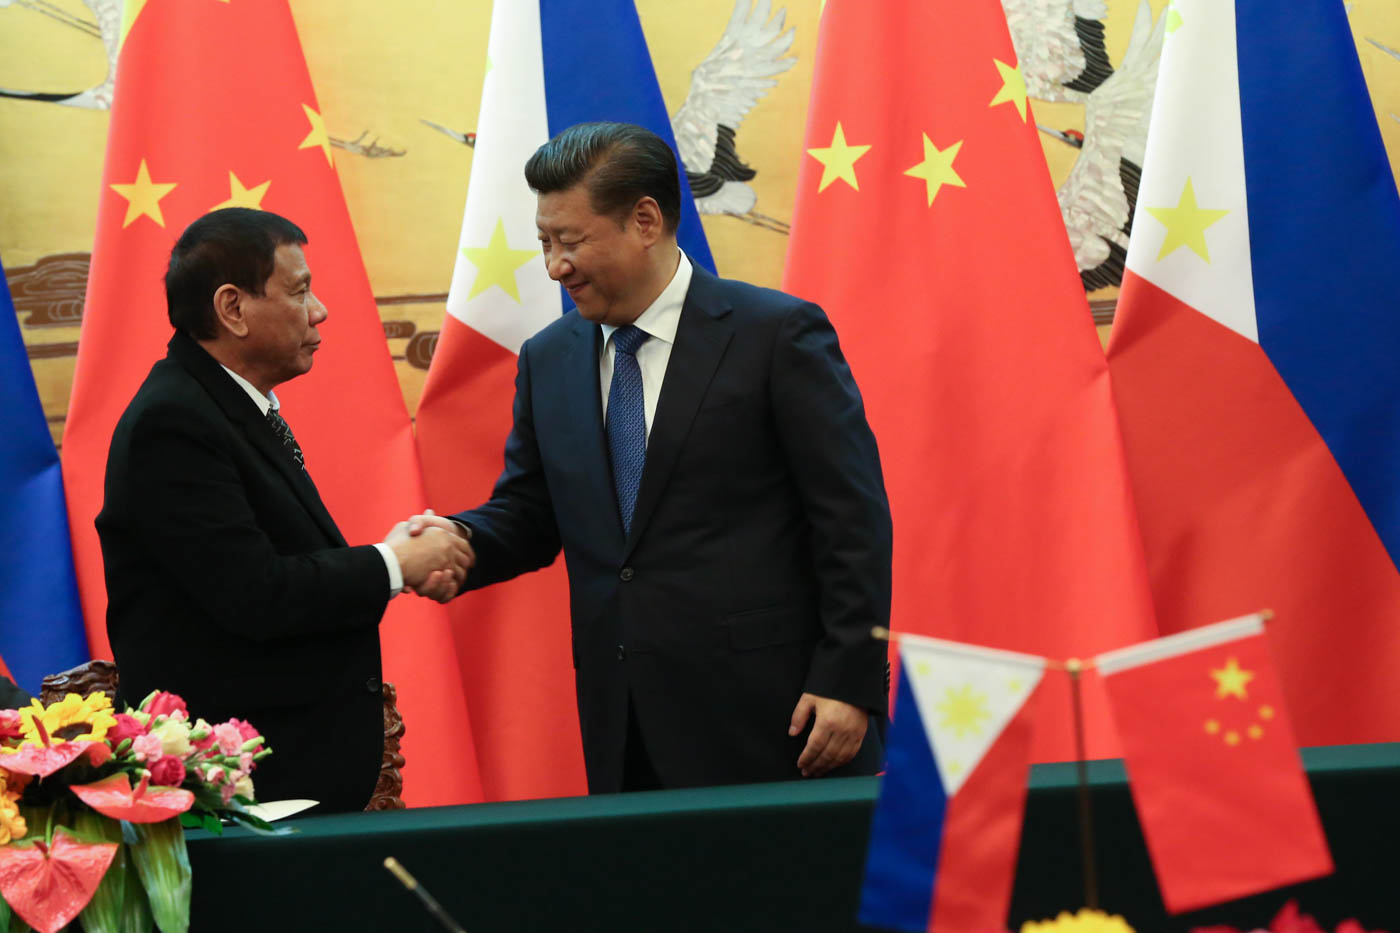 MEETING IN CHINA. Philippine President Rodrigo Duterte shakes hands with his Chinese counterpart Xi Jinping after they witness the signing of documents on cooperation in trade, agriculture, tourism, maritime security, and infrastructure. Photo by Toto Lozano/PPD